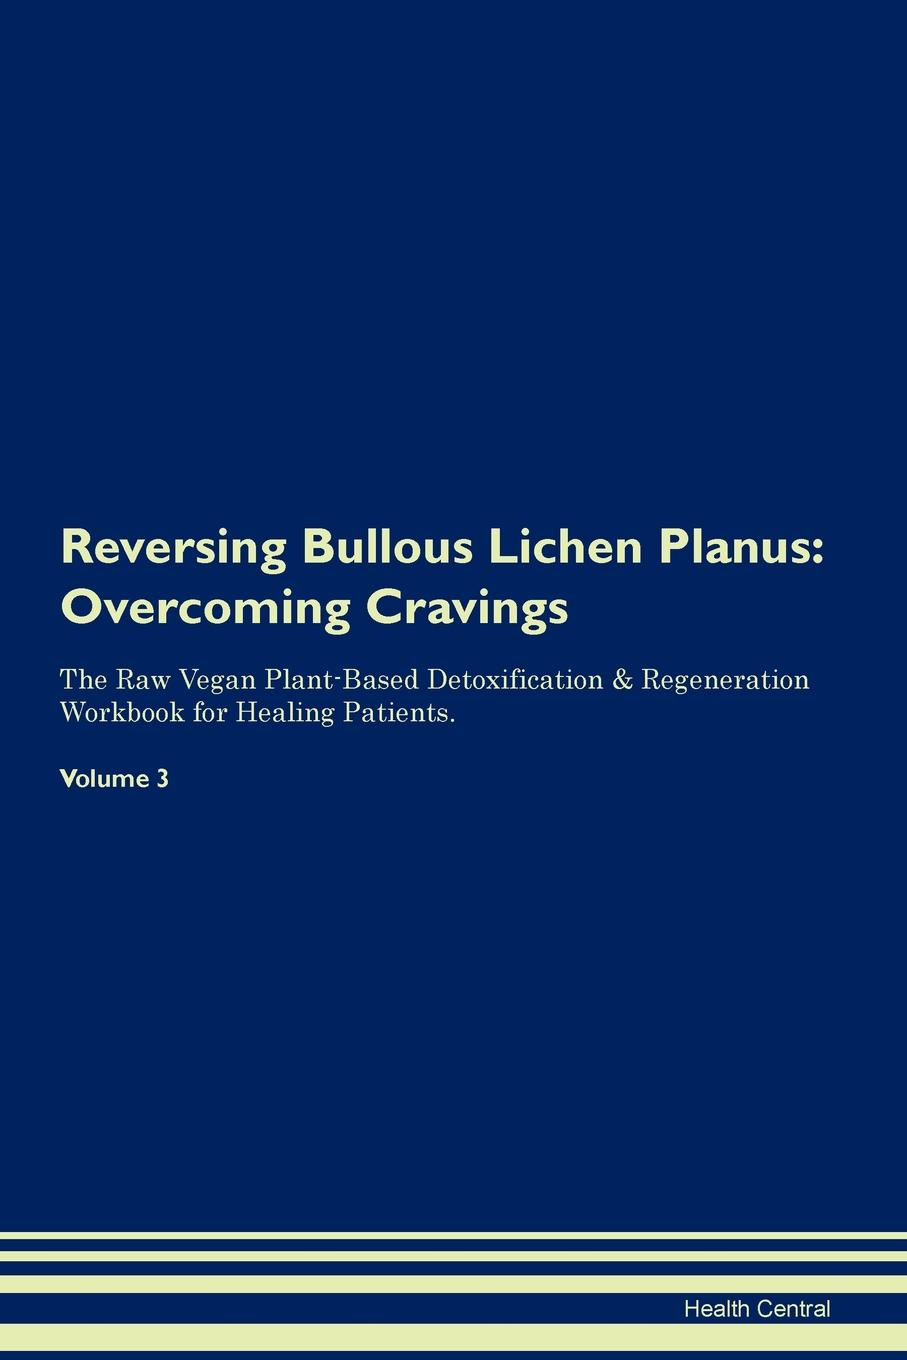 Фото - Health Central Reversing Bullous Lichen Planus. Overcoming Cravings The Raw Vegan Plant-Based Detoxification & Regeneration Workbook for Healing Patients. Volume 3 health central reversing lichen sclerosus overcoming cravings the raw vegan plant based detoxification regeneration workbook for healing patients volume 3